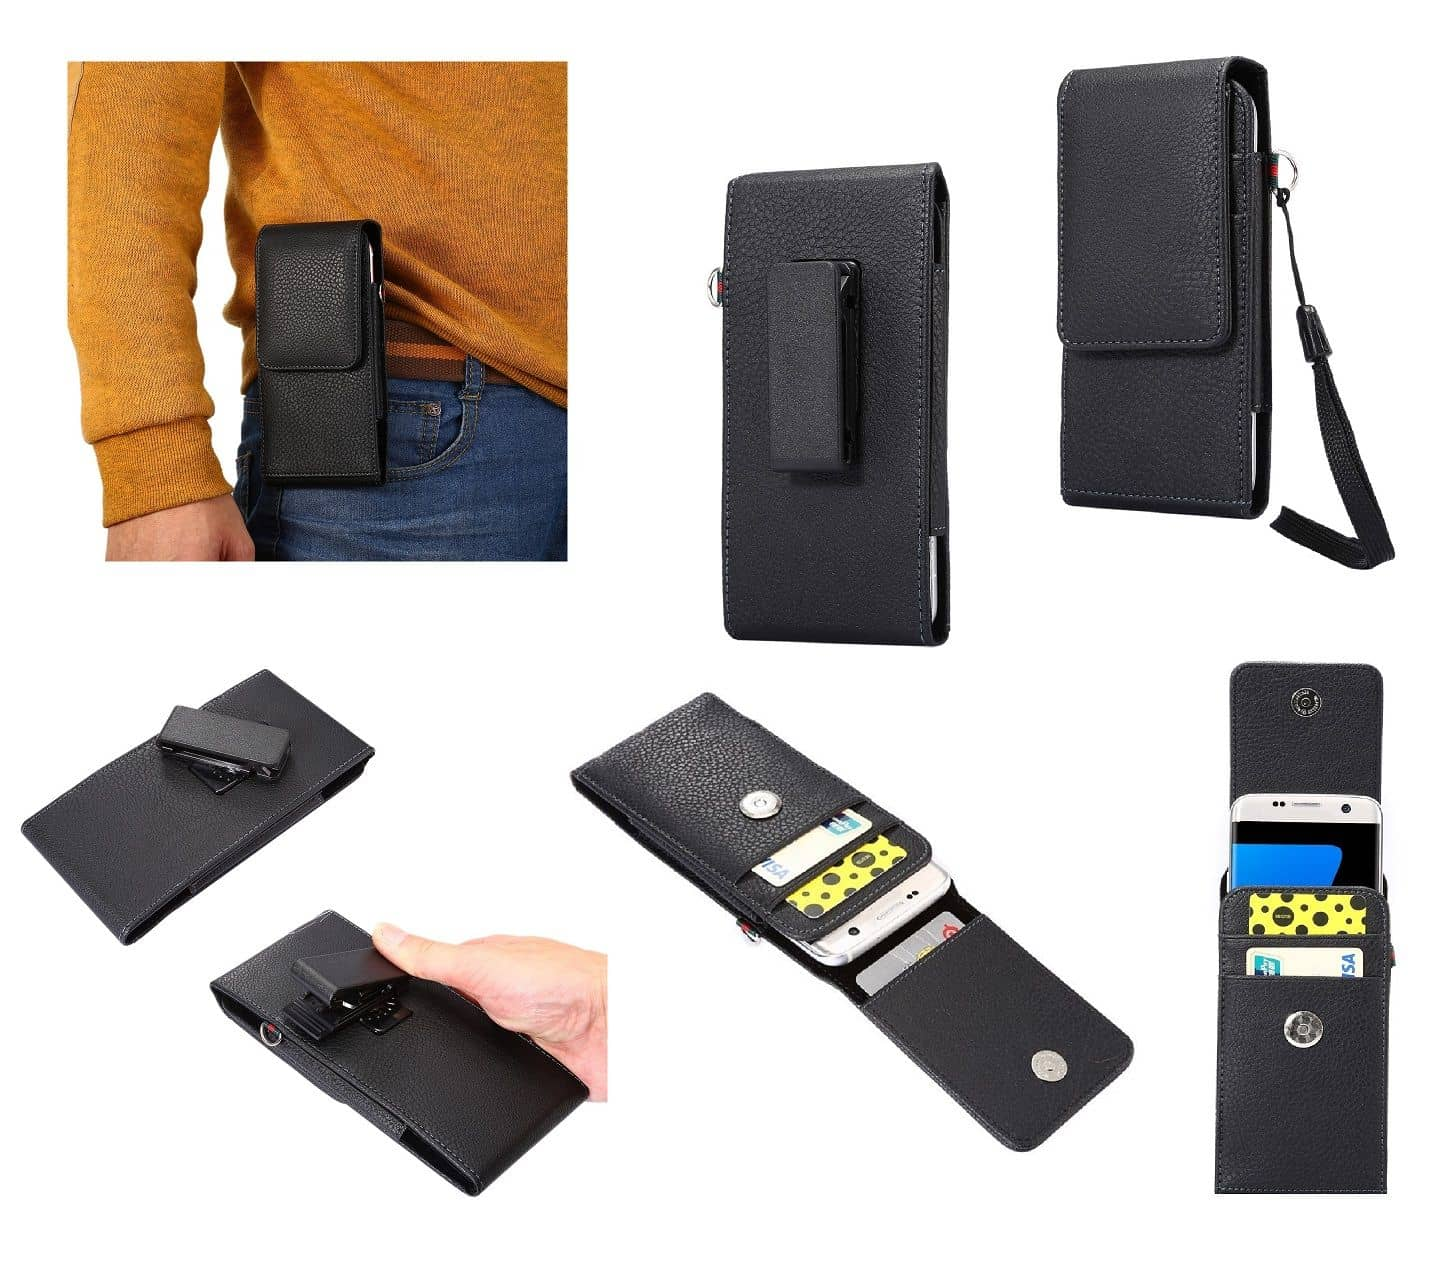 Magnetic leather Holster Card Holder Case belt Clip Rotary 360 for KYOCERA BASIO 4 (2020) - Black